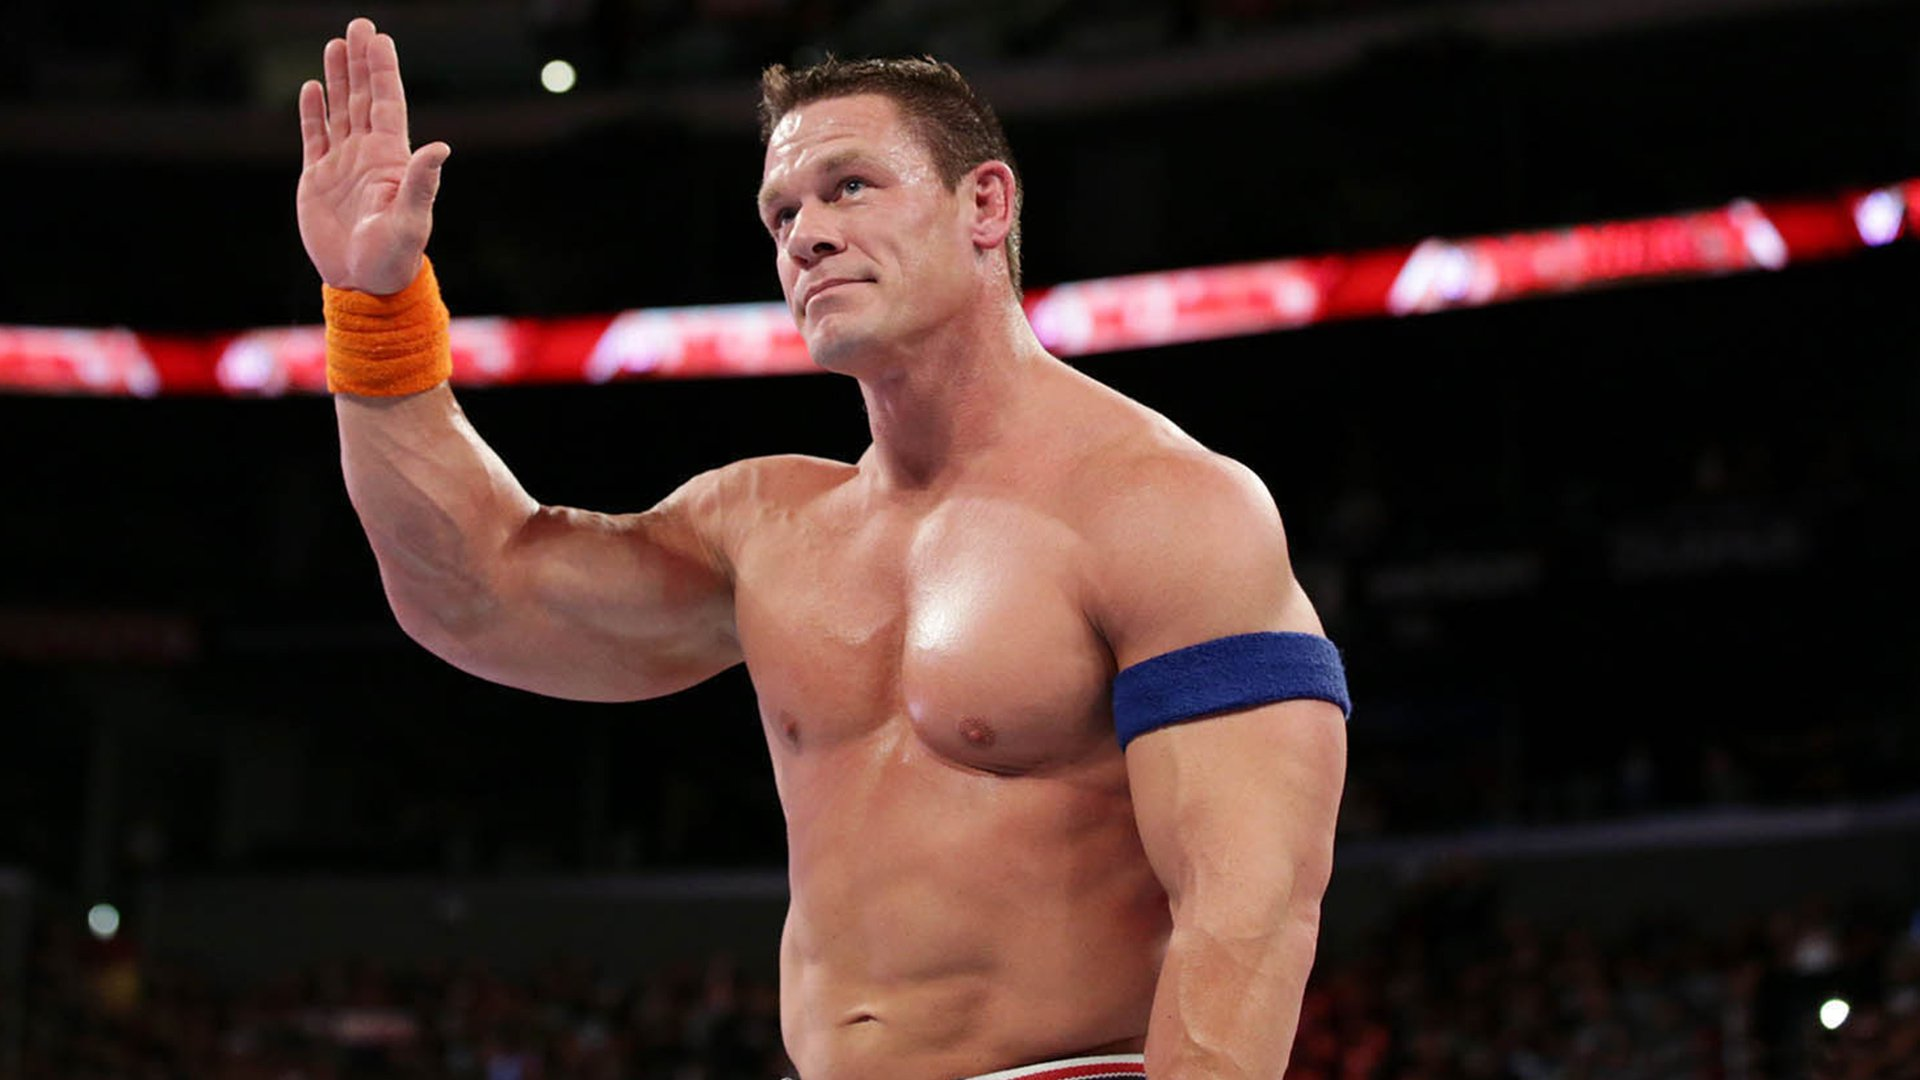 Did we just see John Cena\'s last match? | WWE